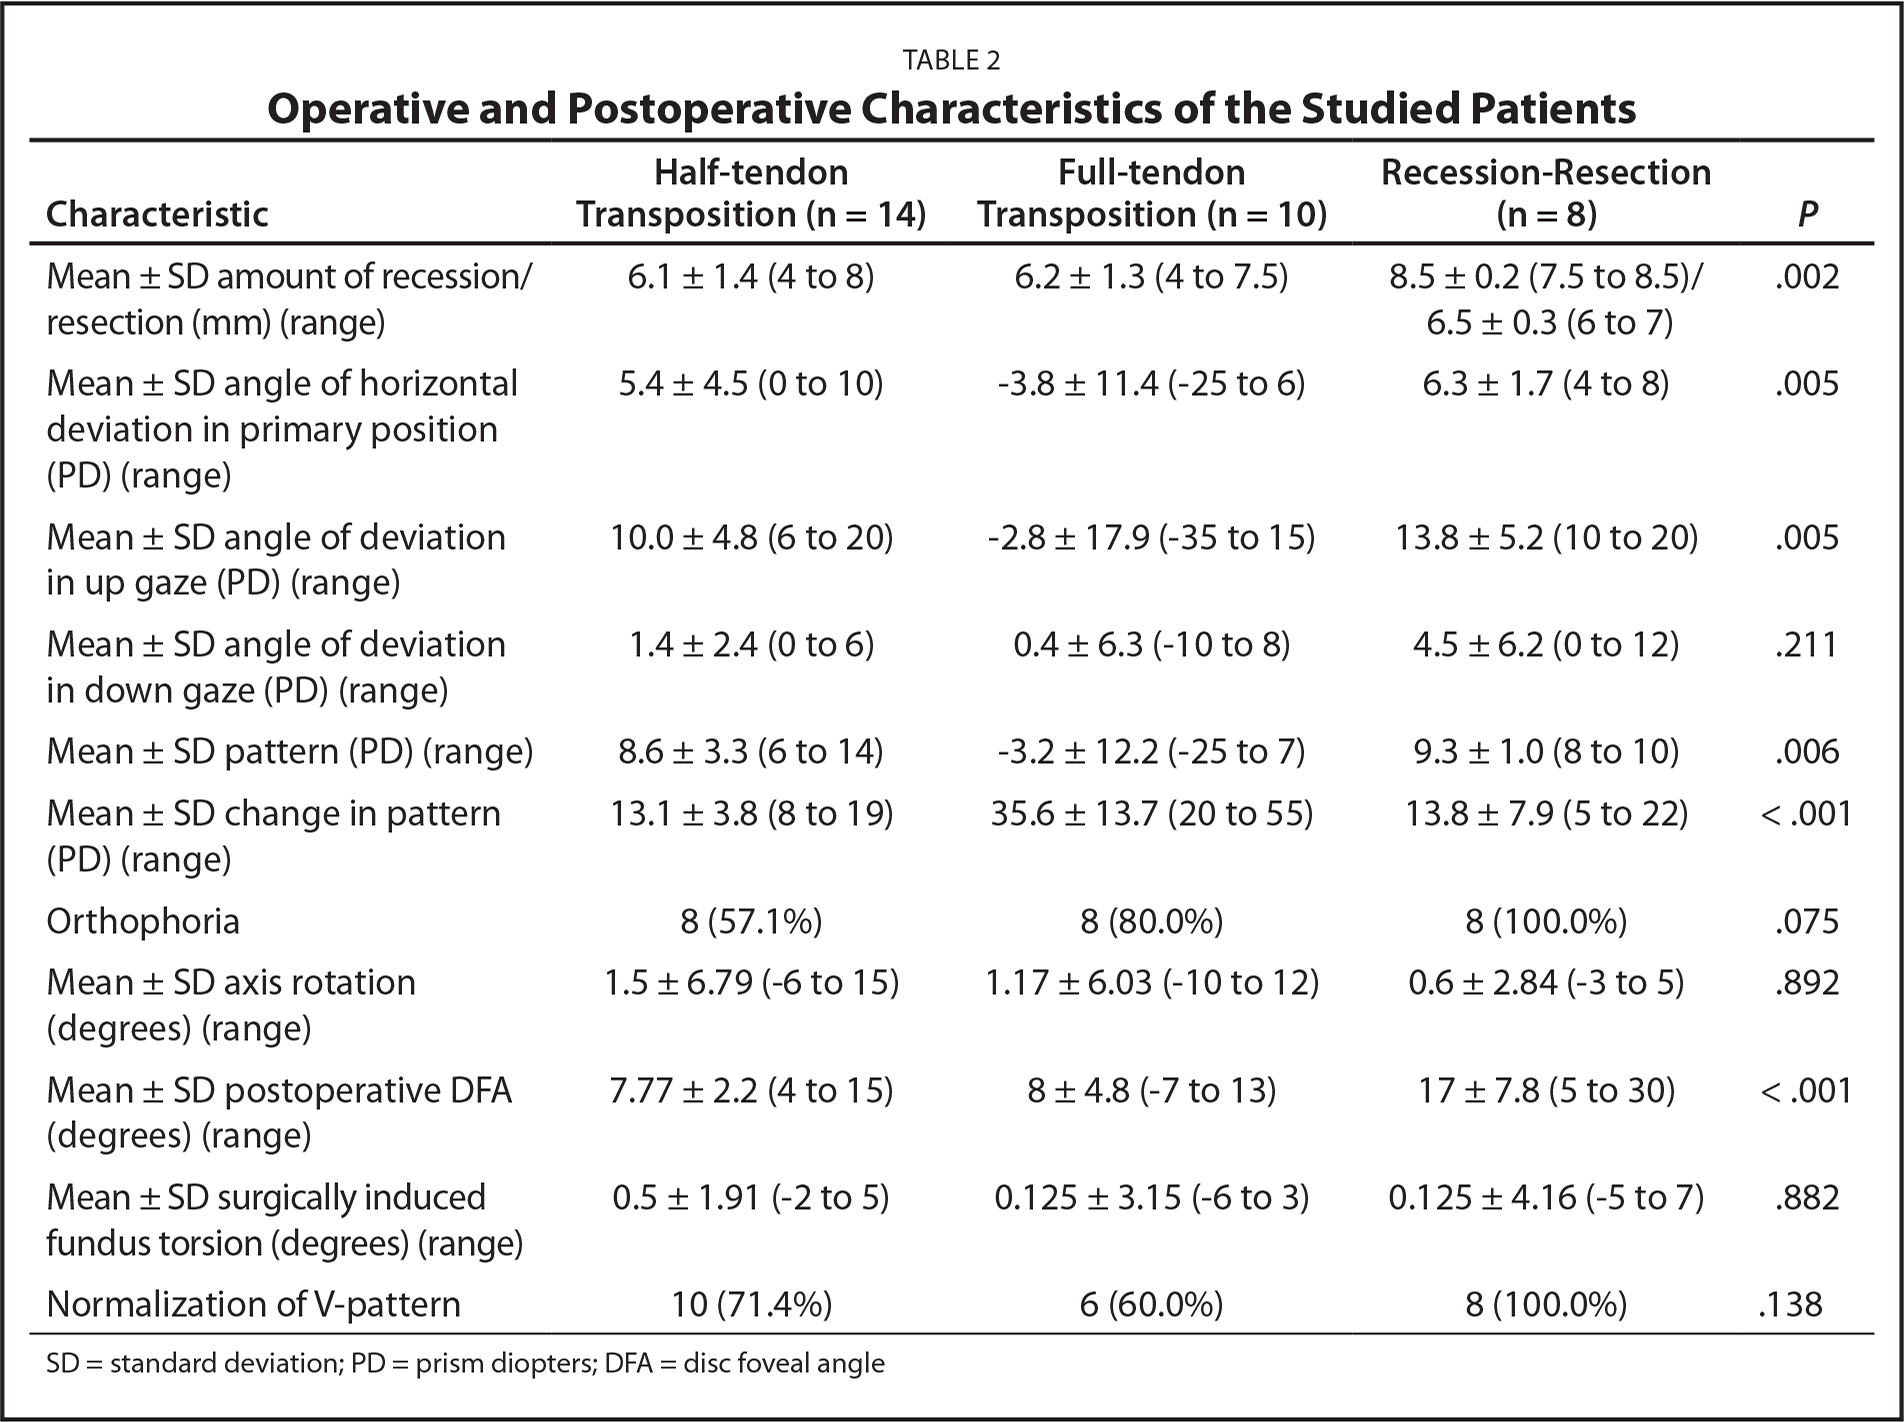 Operative and Postoperative Characteristics of the Studied Patients